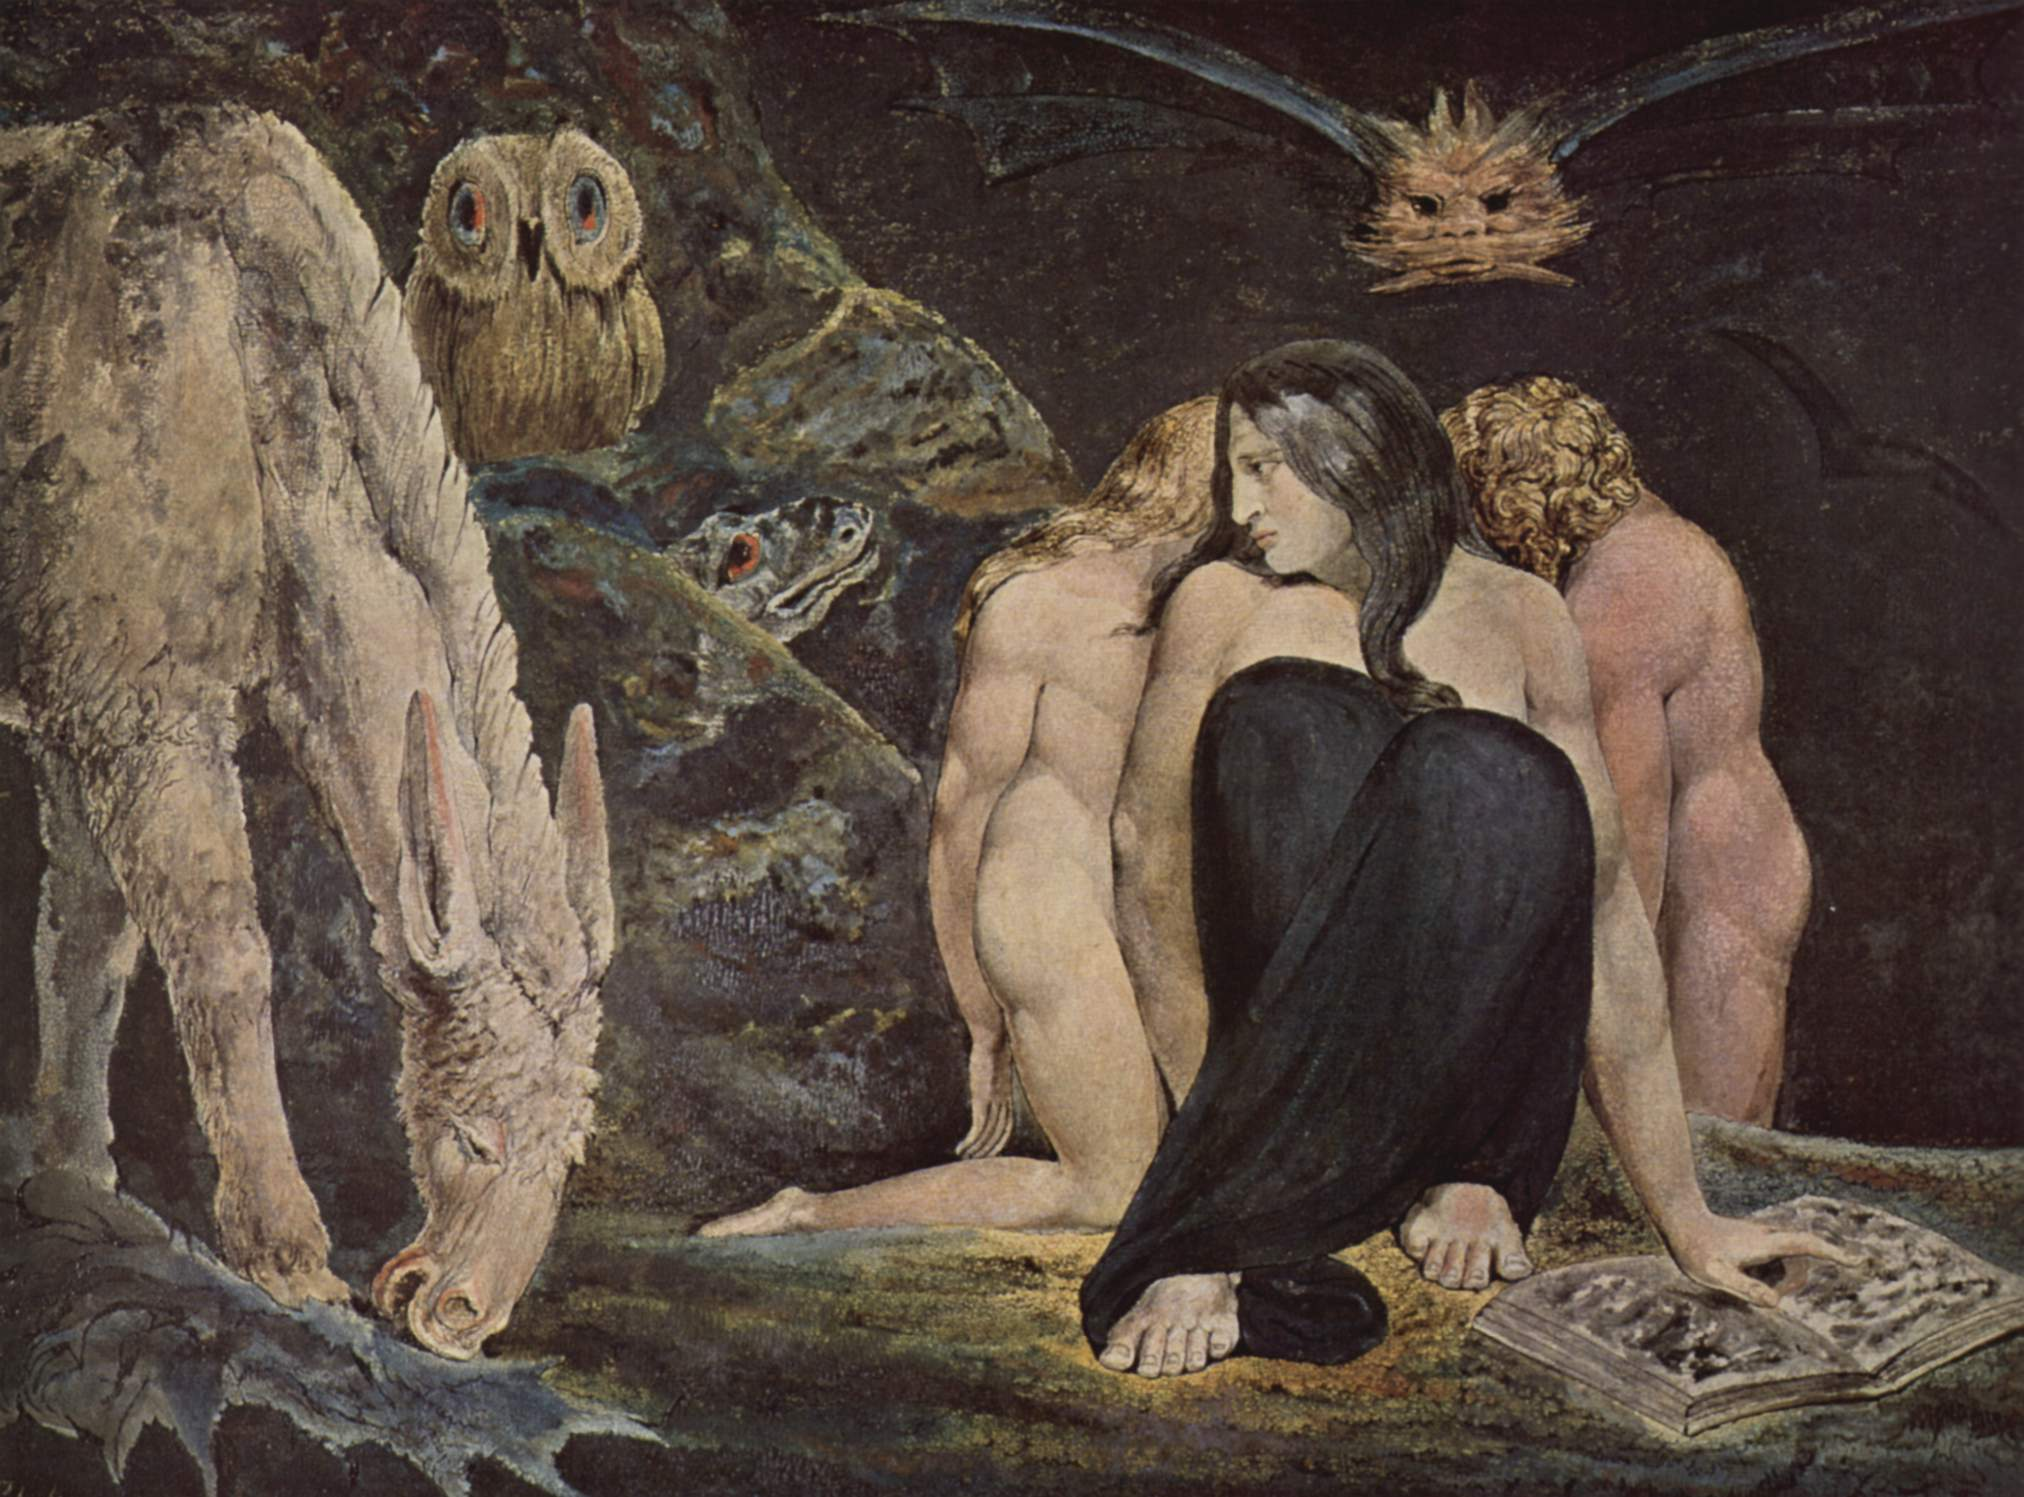 'The Triple Hecate' by William Blake